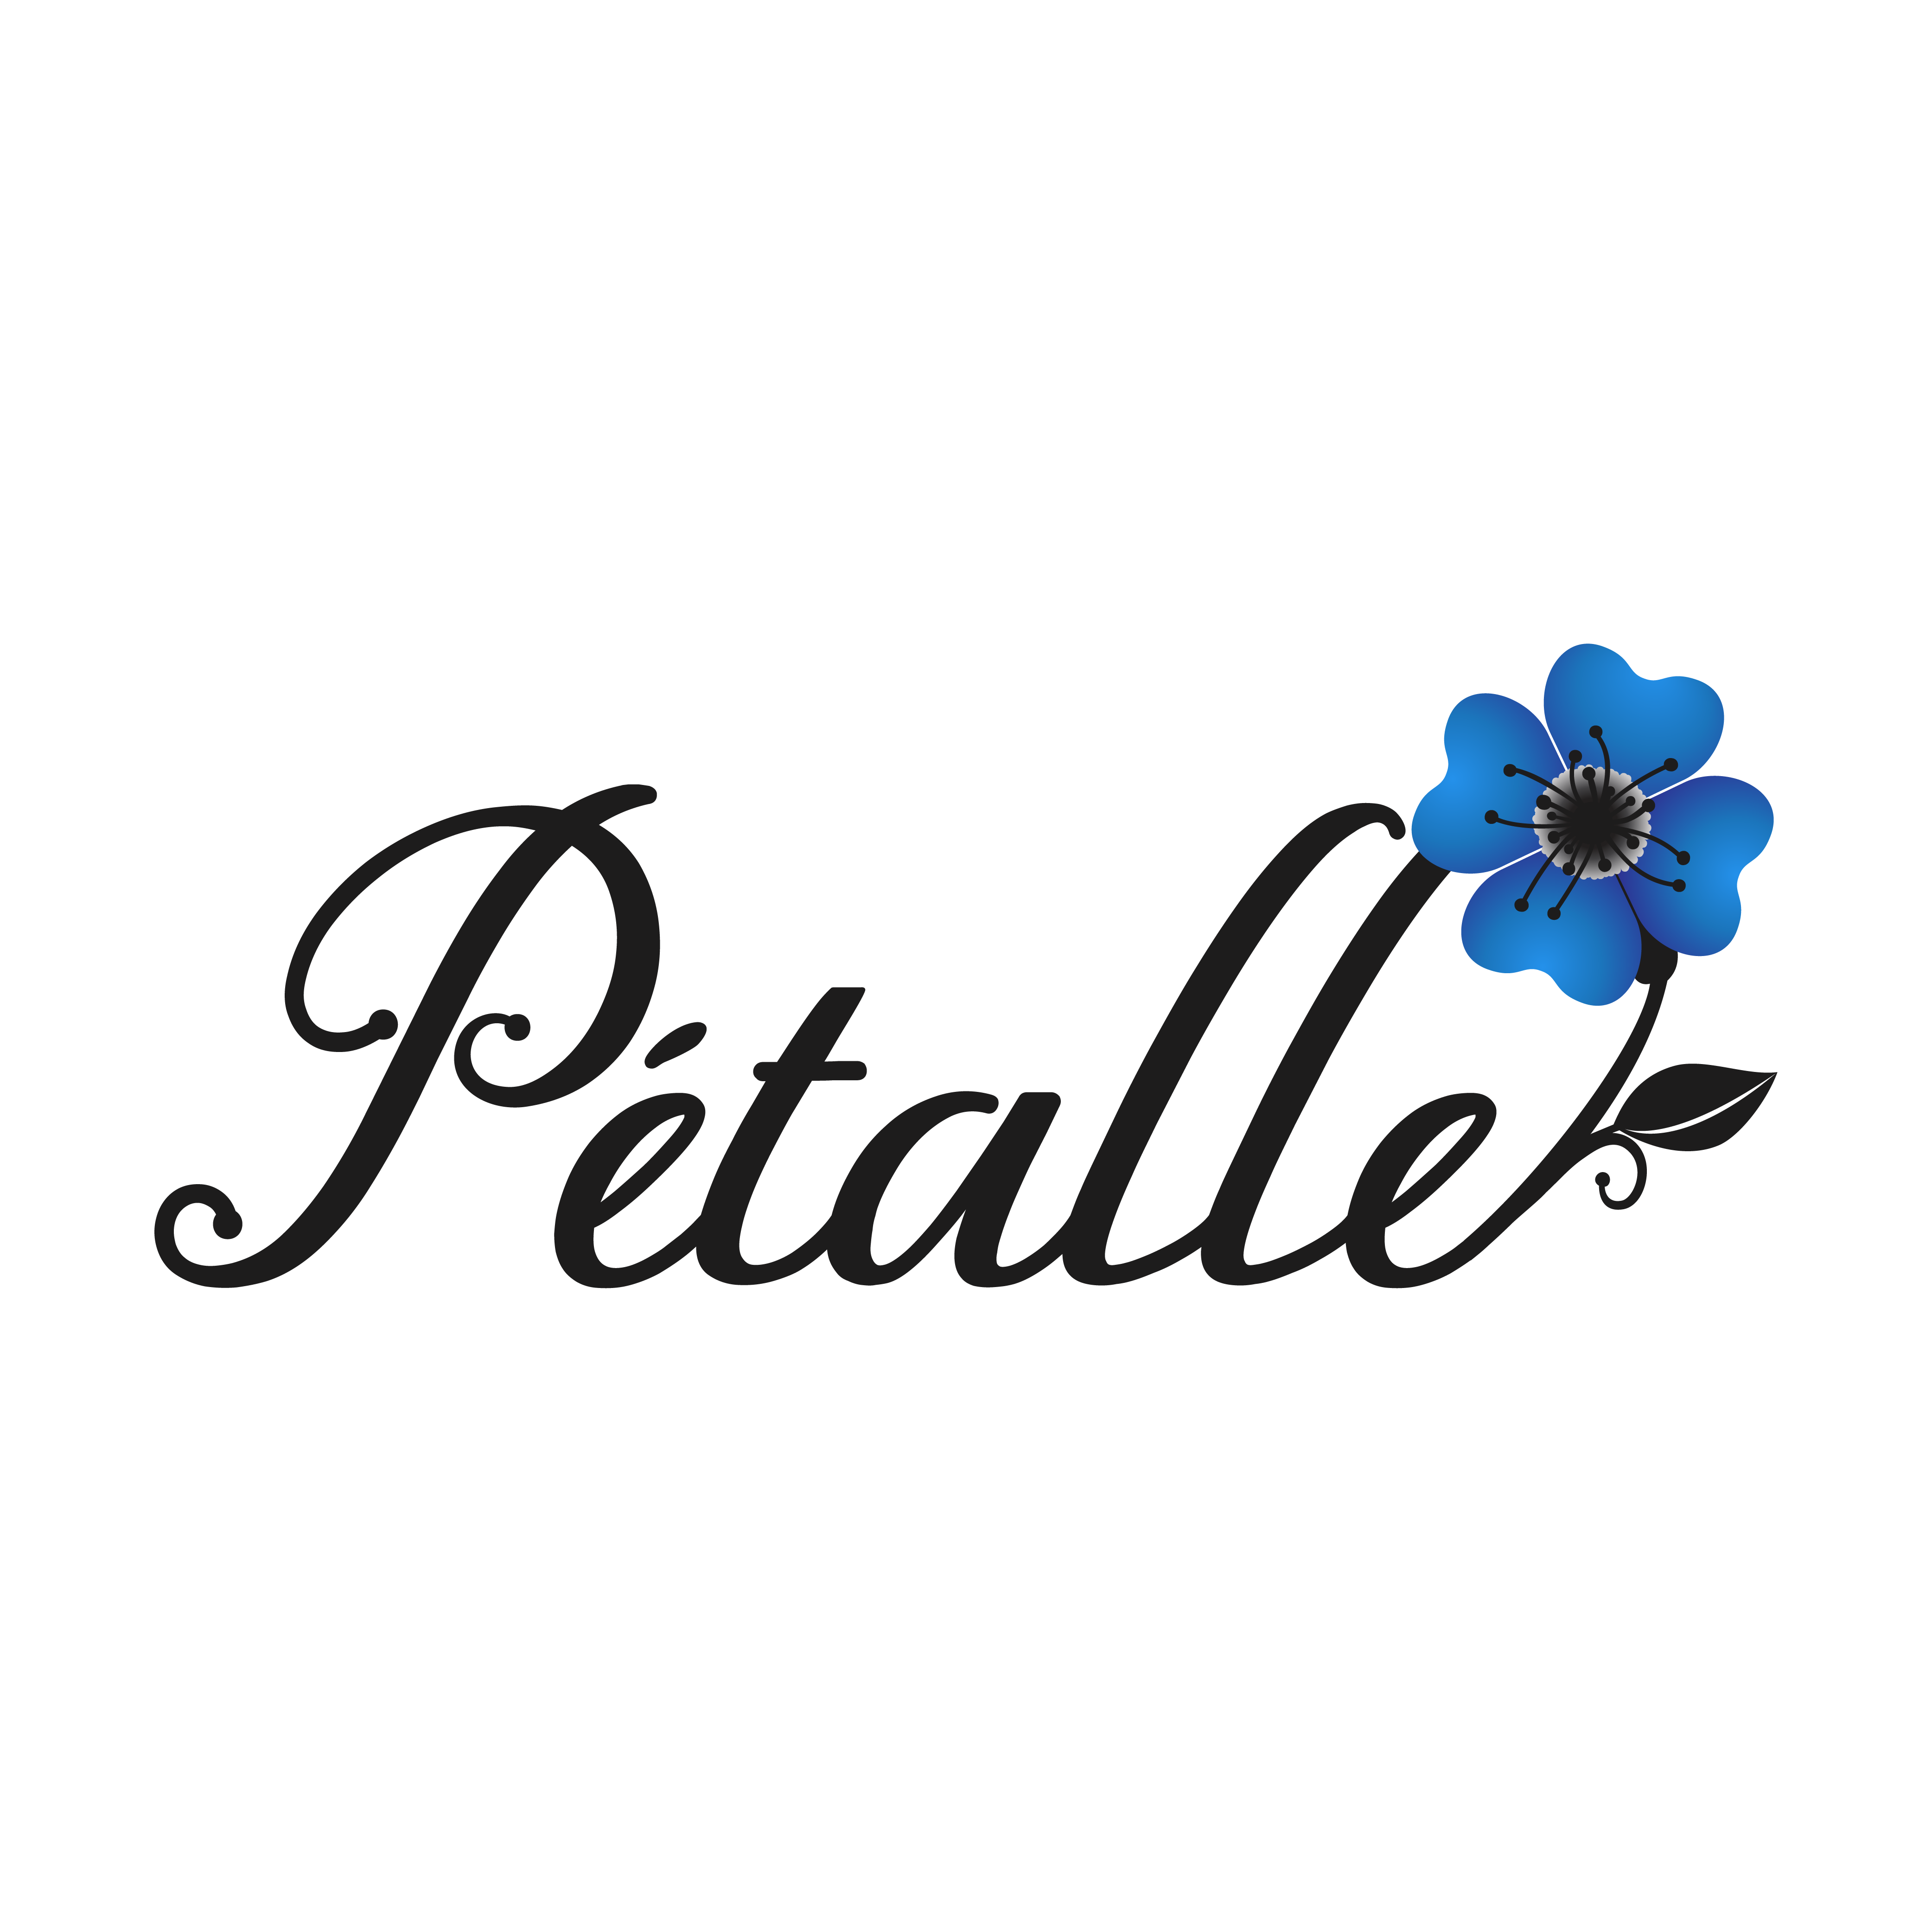 Design an elegant logo for natural skin care and perfumes company.